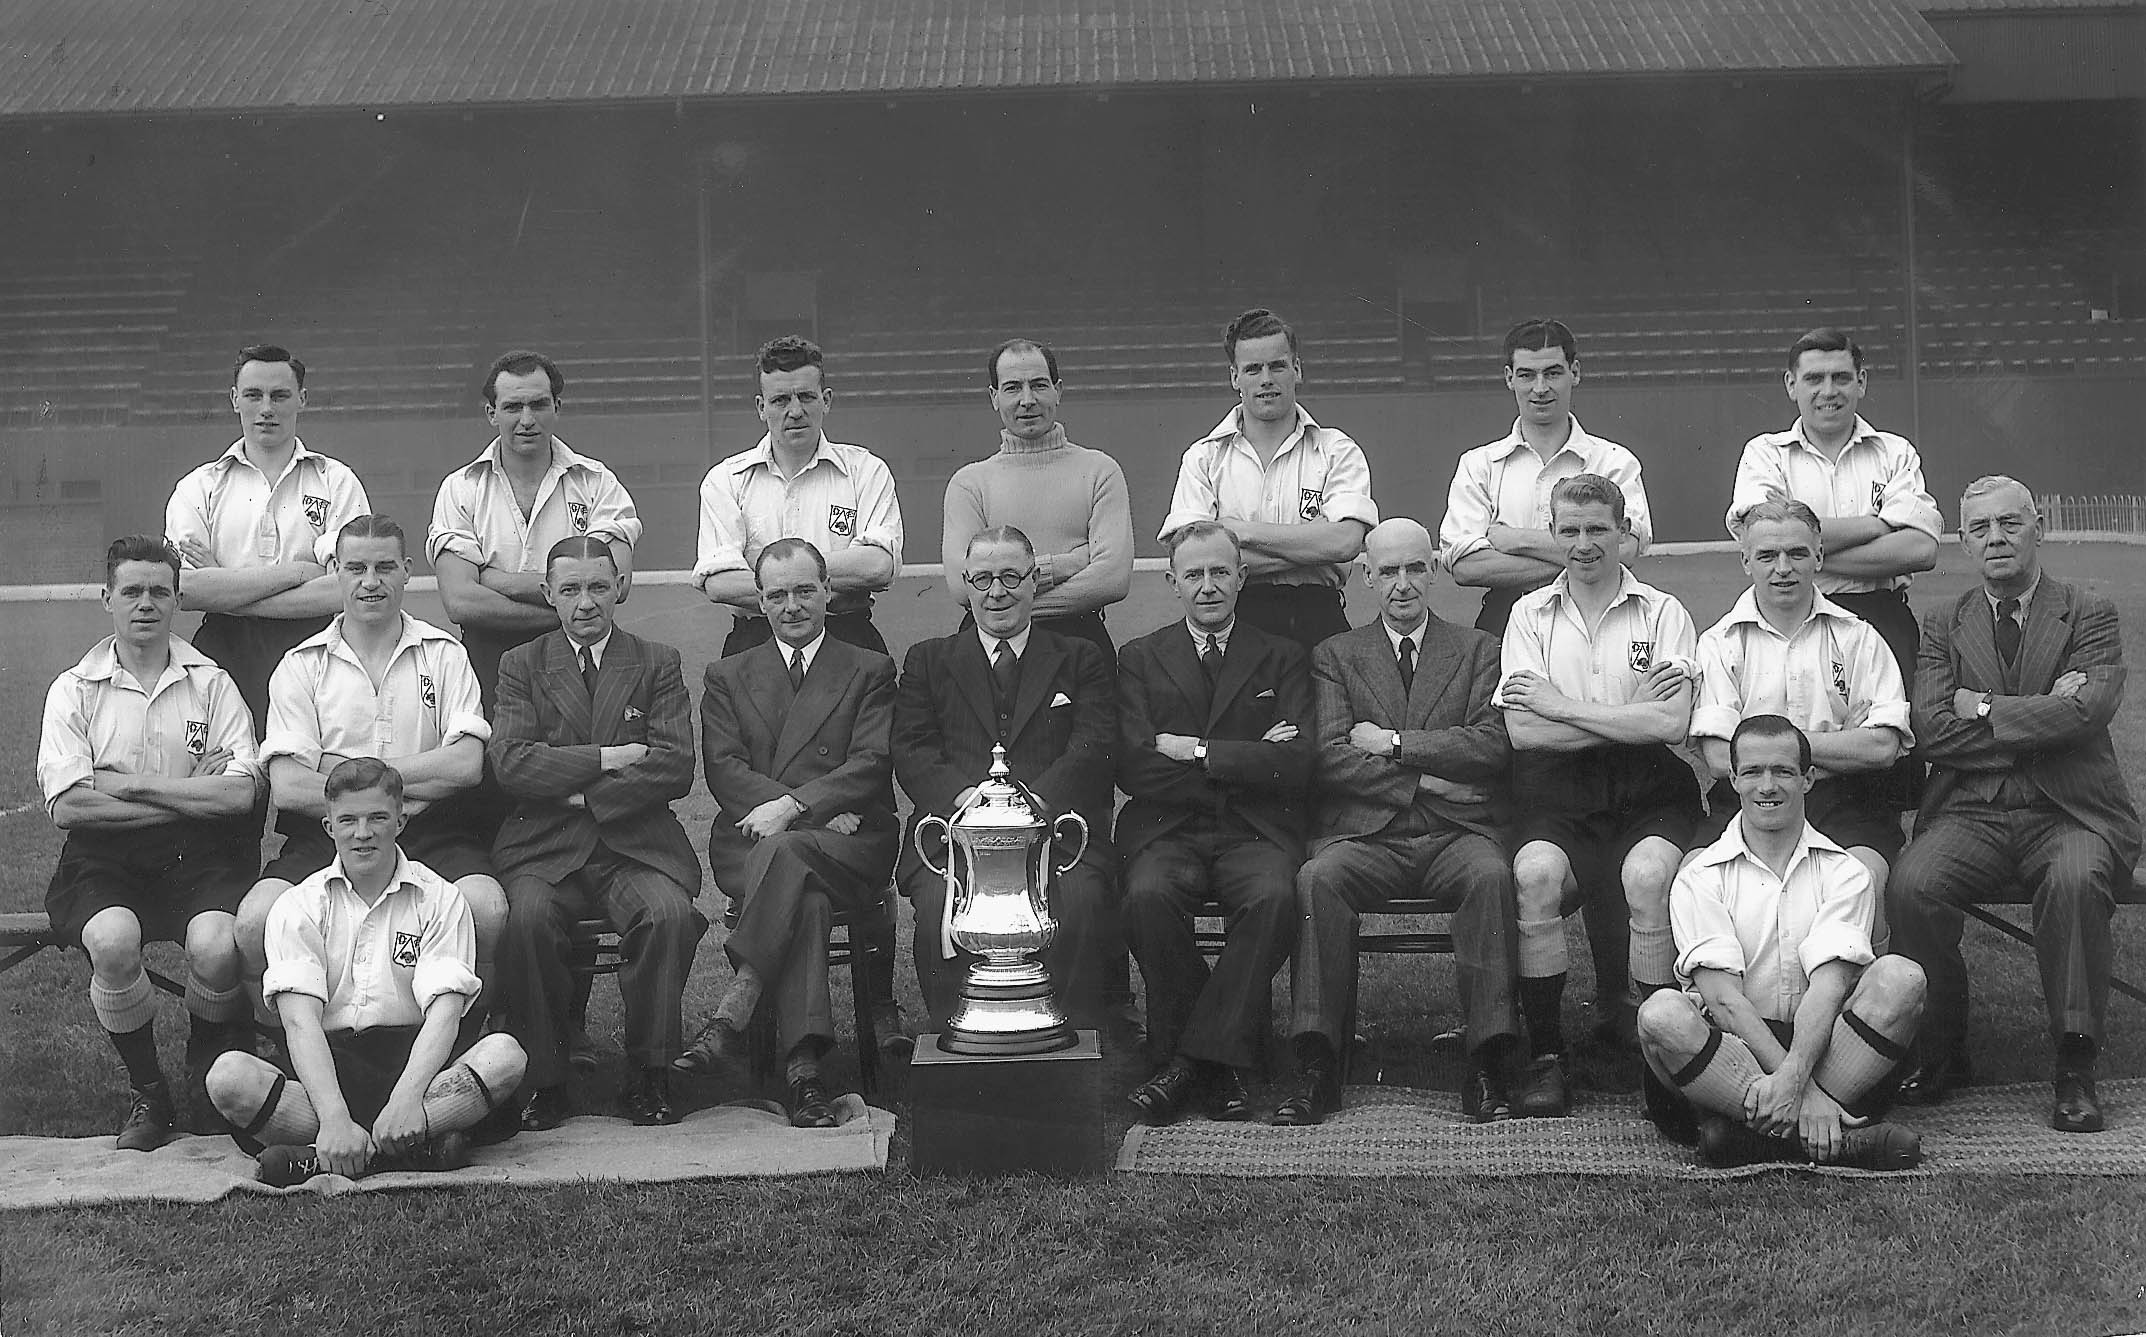 Derby County cup winner 1946. Contrast the neatly-laundered shirts worn here to those actually used for the match, as shown on the book cover